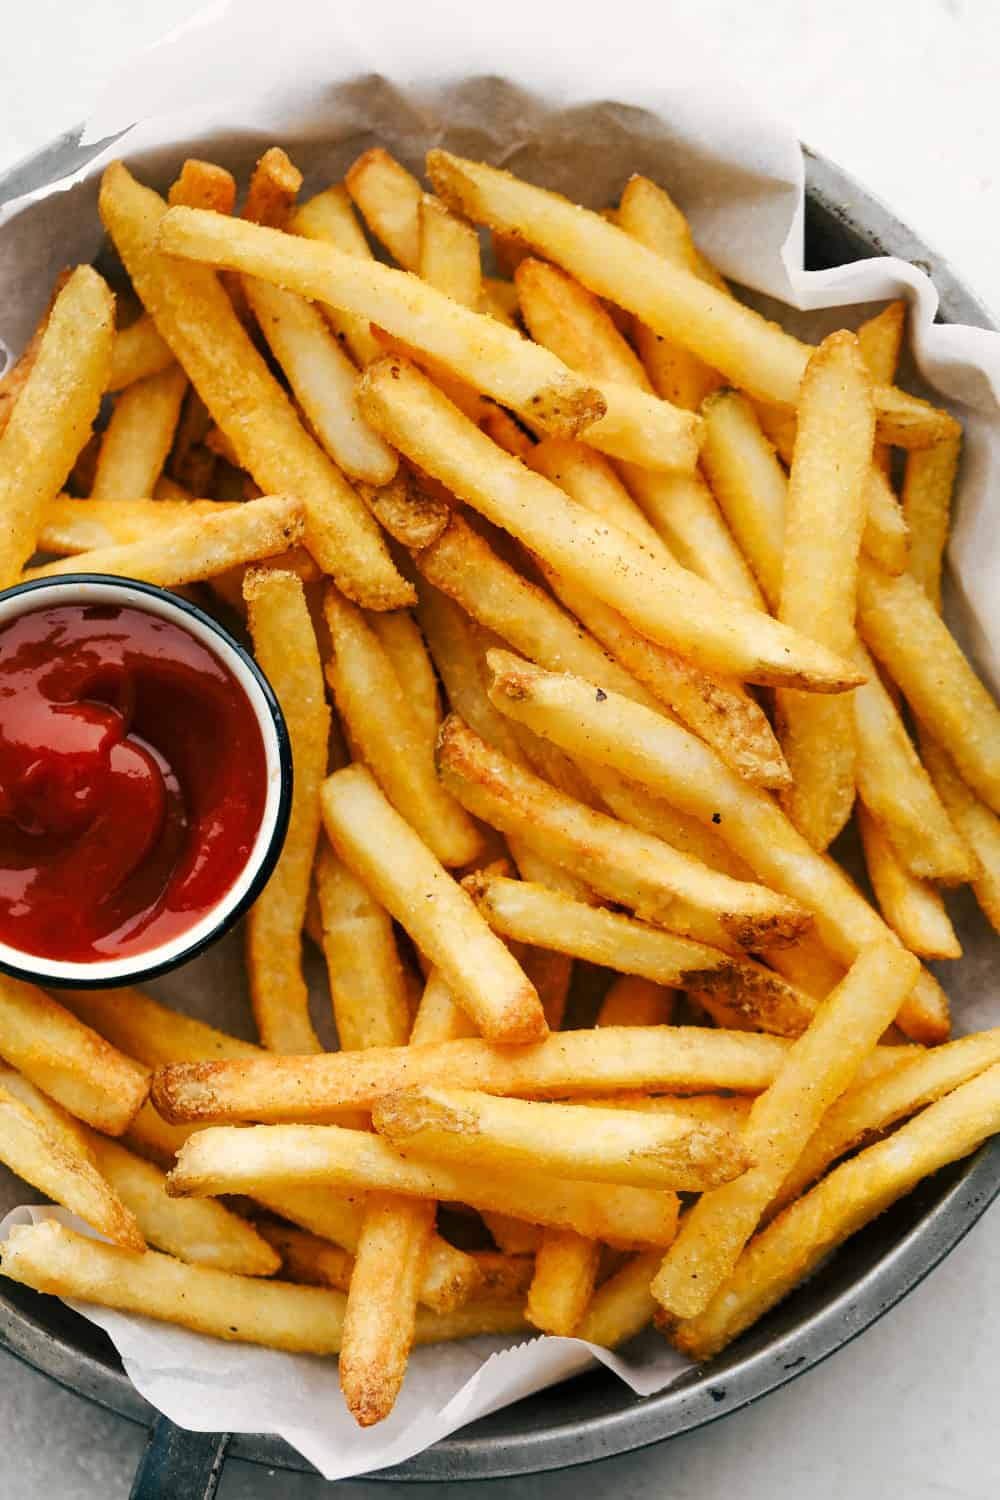 French fries on a plate with ketchup.